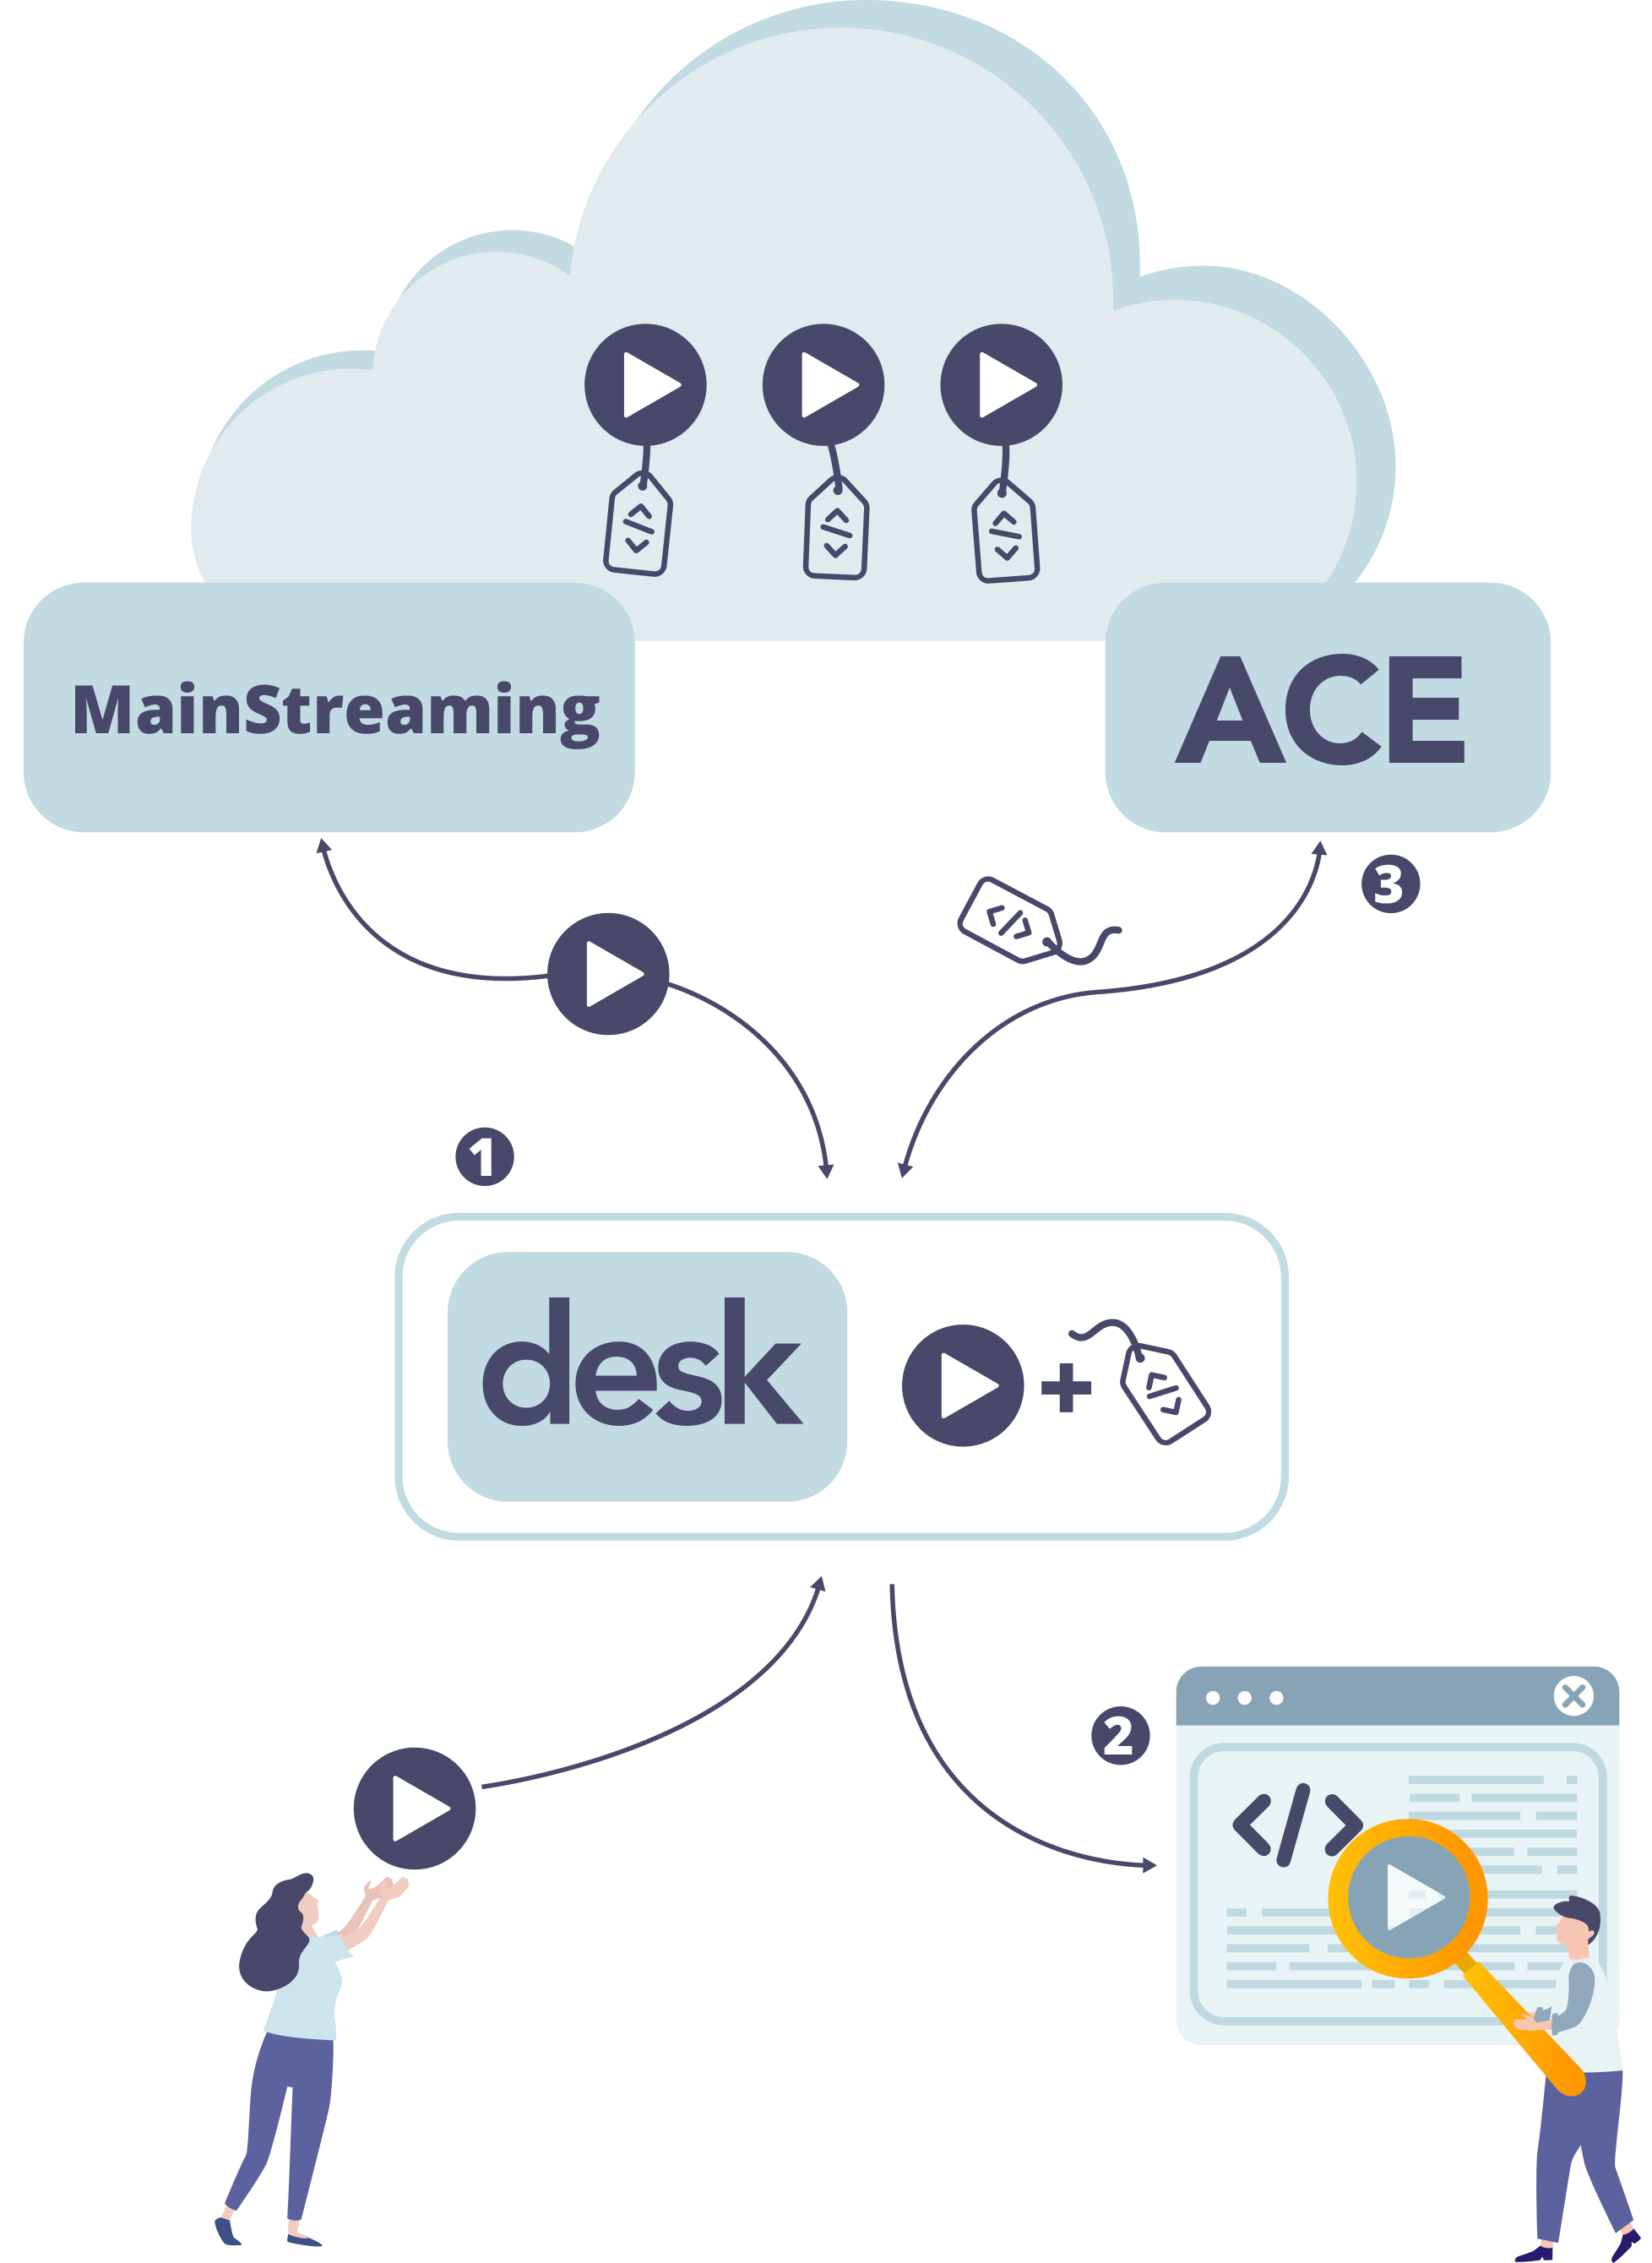 Atex and MainStreaming workflow